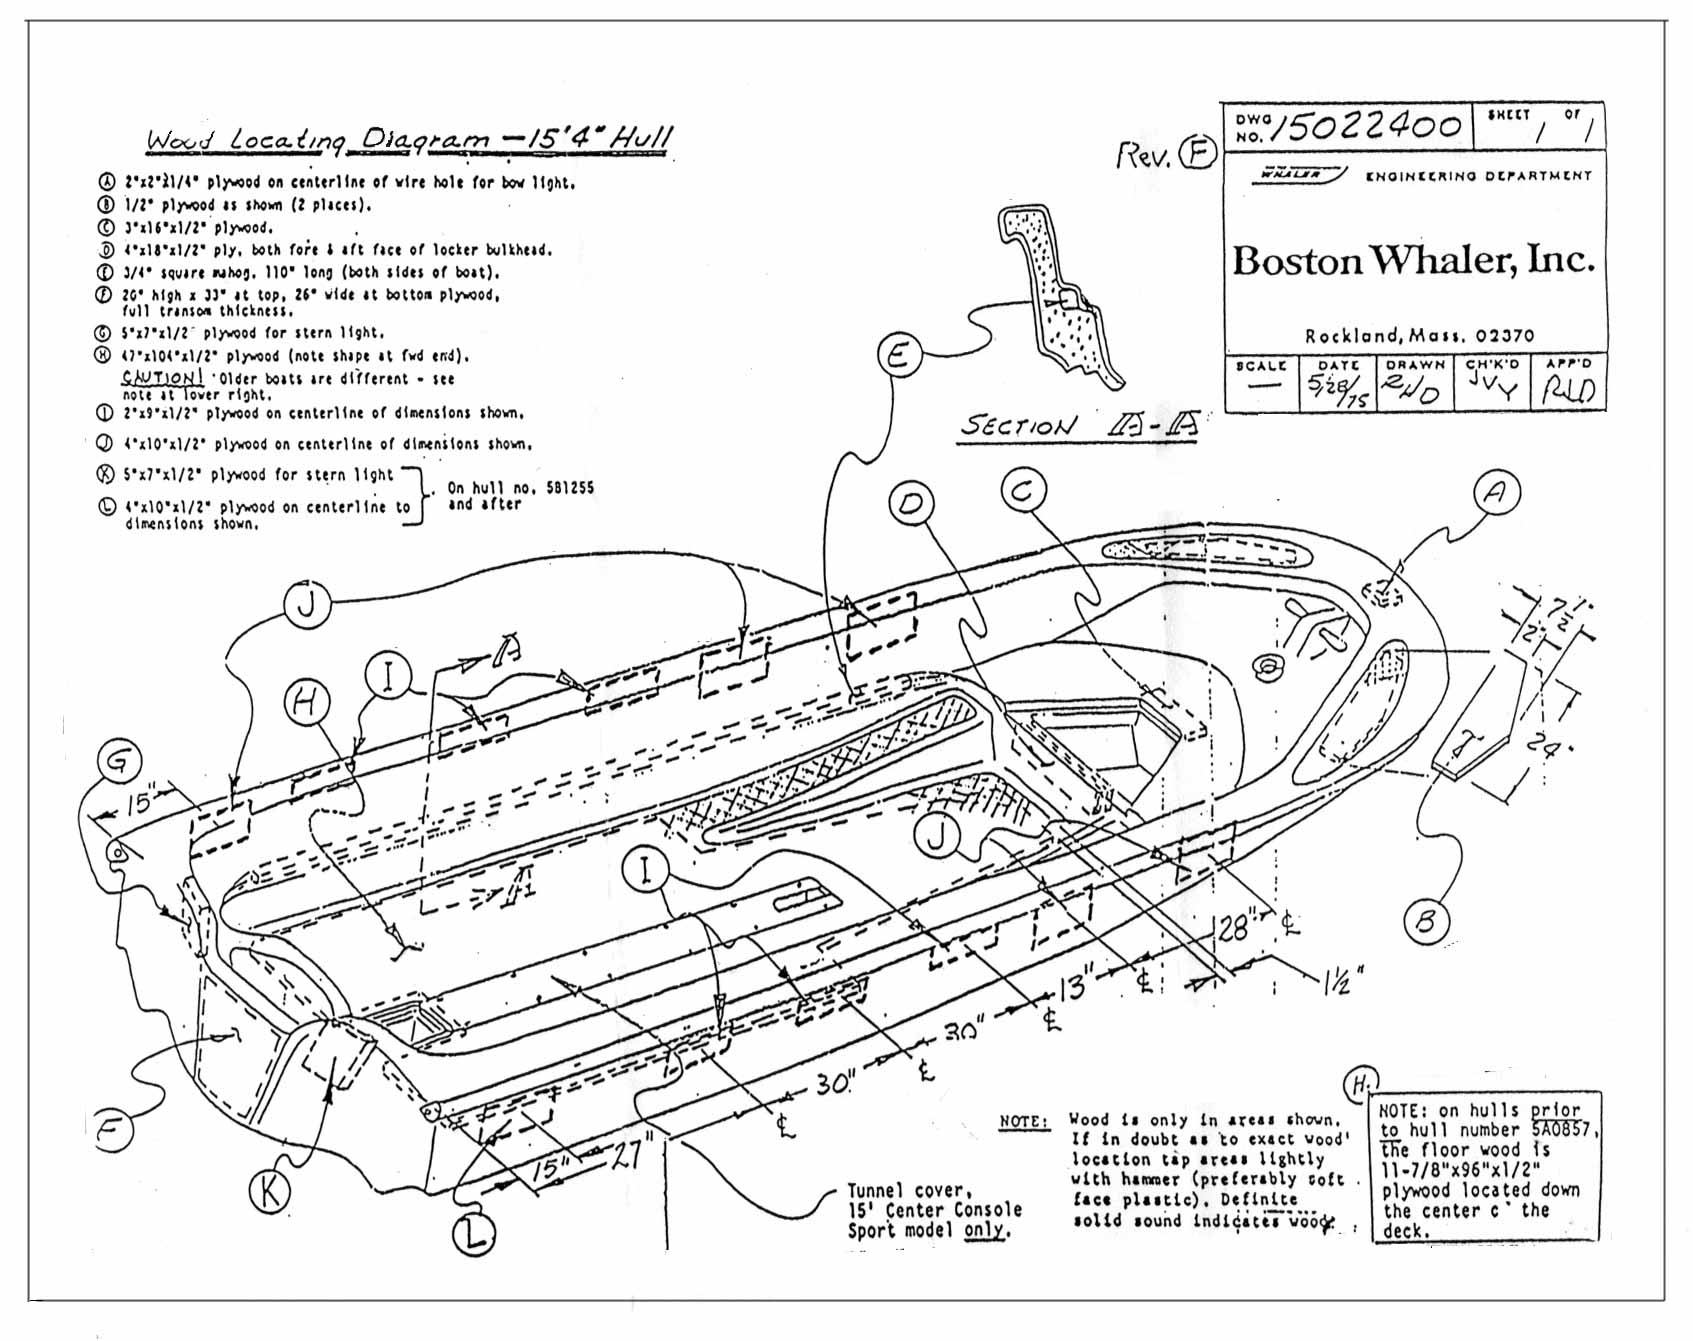 Classic Whaler Boston Whaler Reference Available Drawings